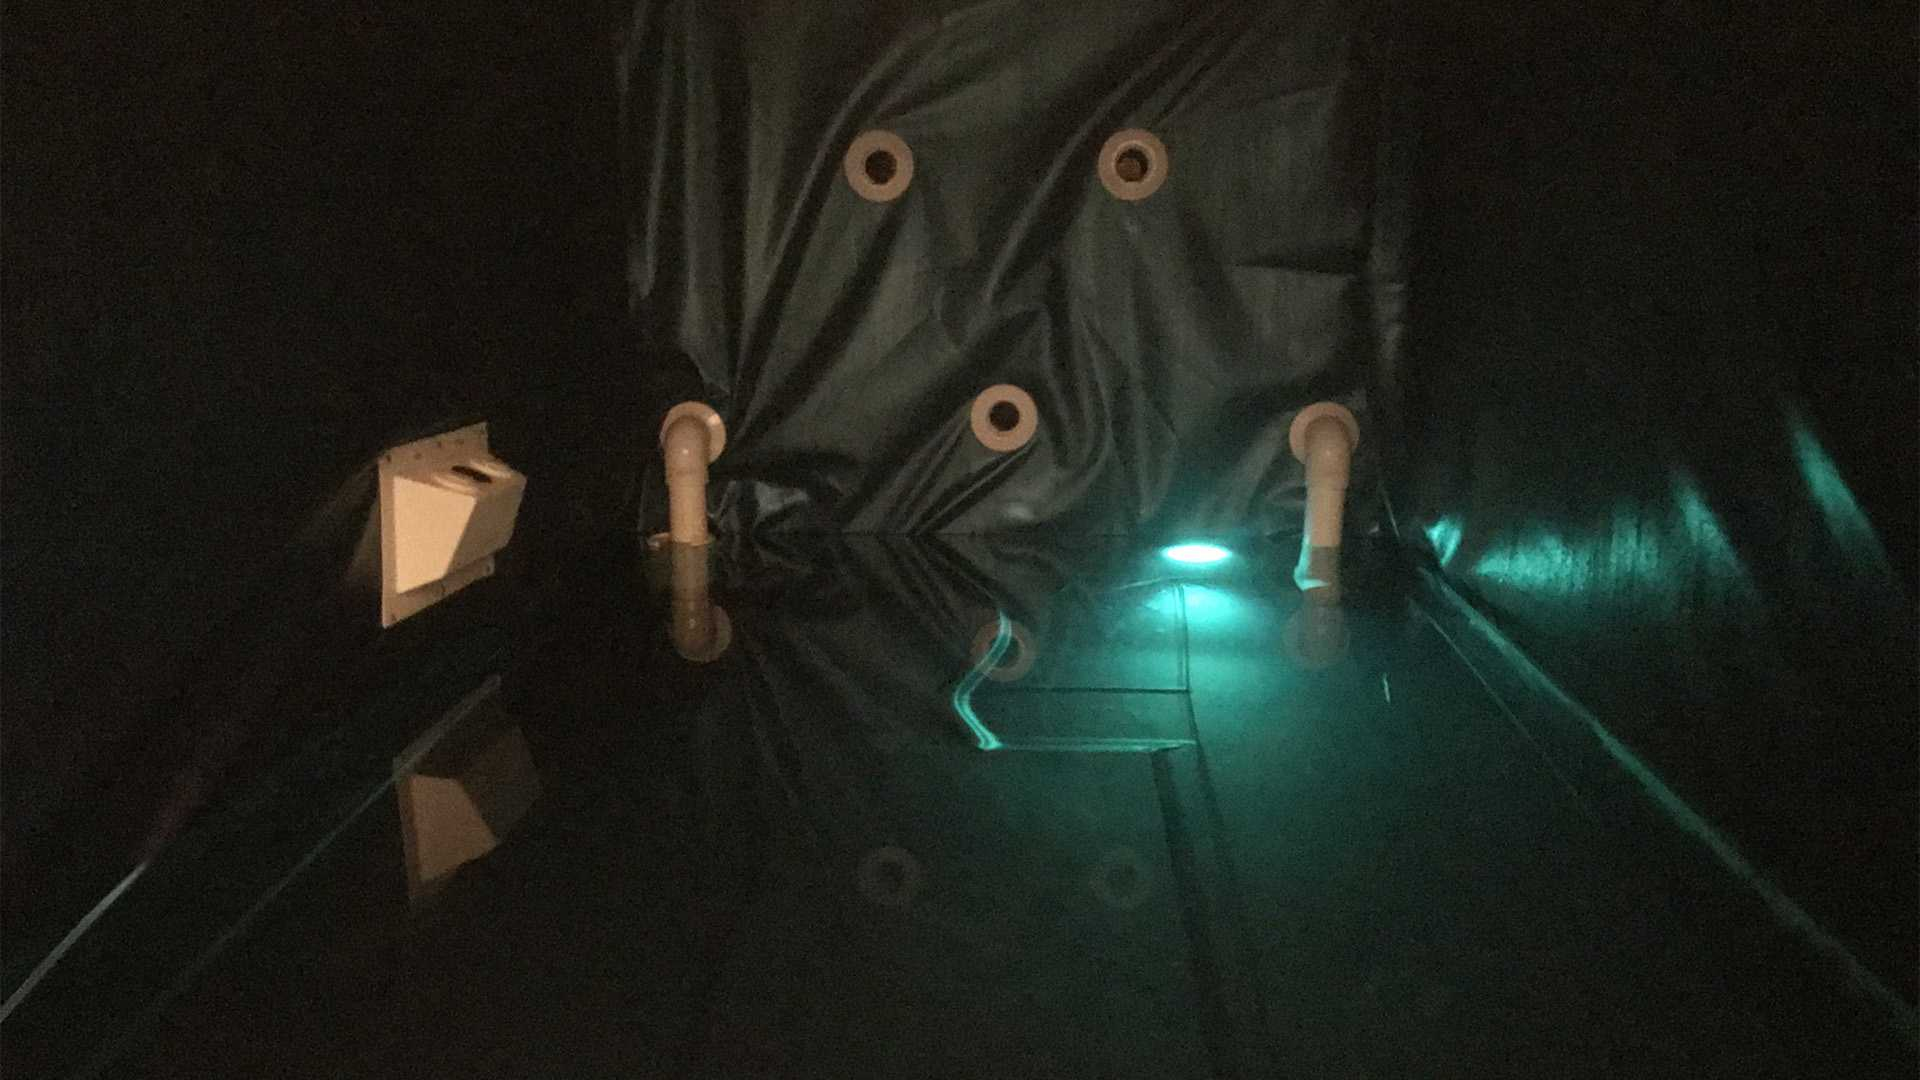 Clayton: My hour in a sensory deprivation tank